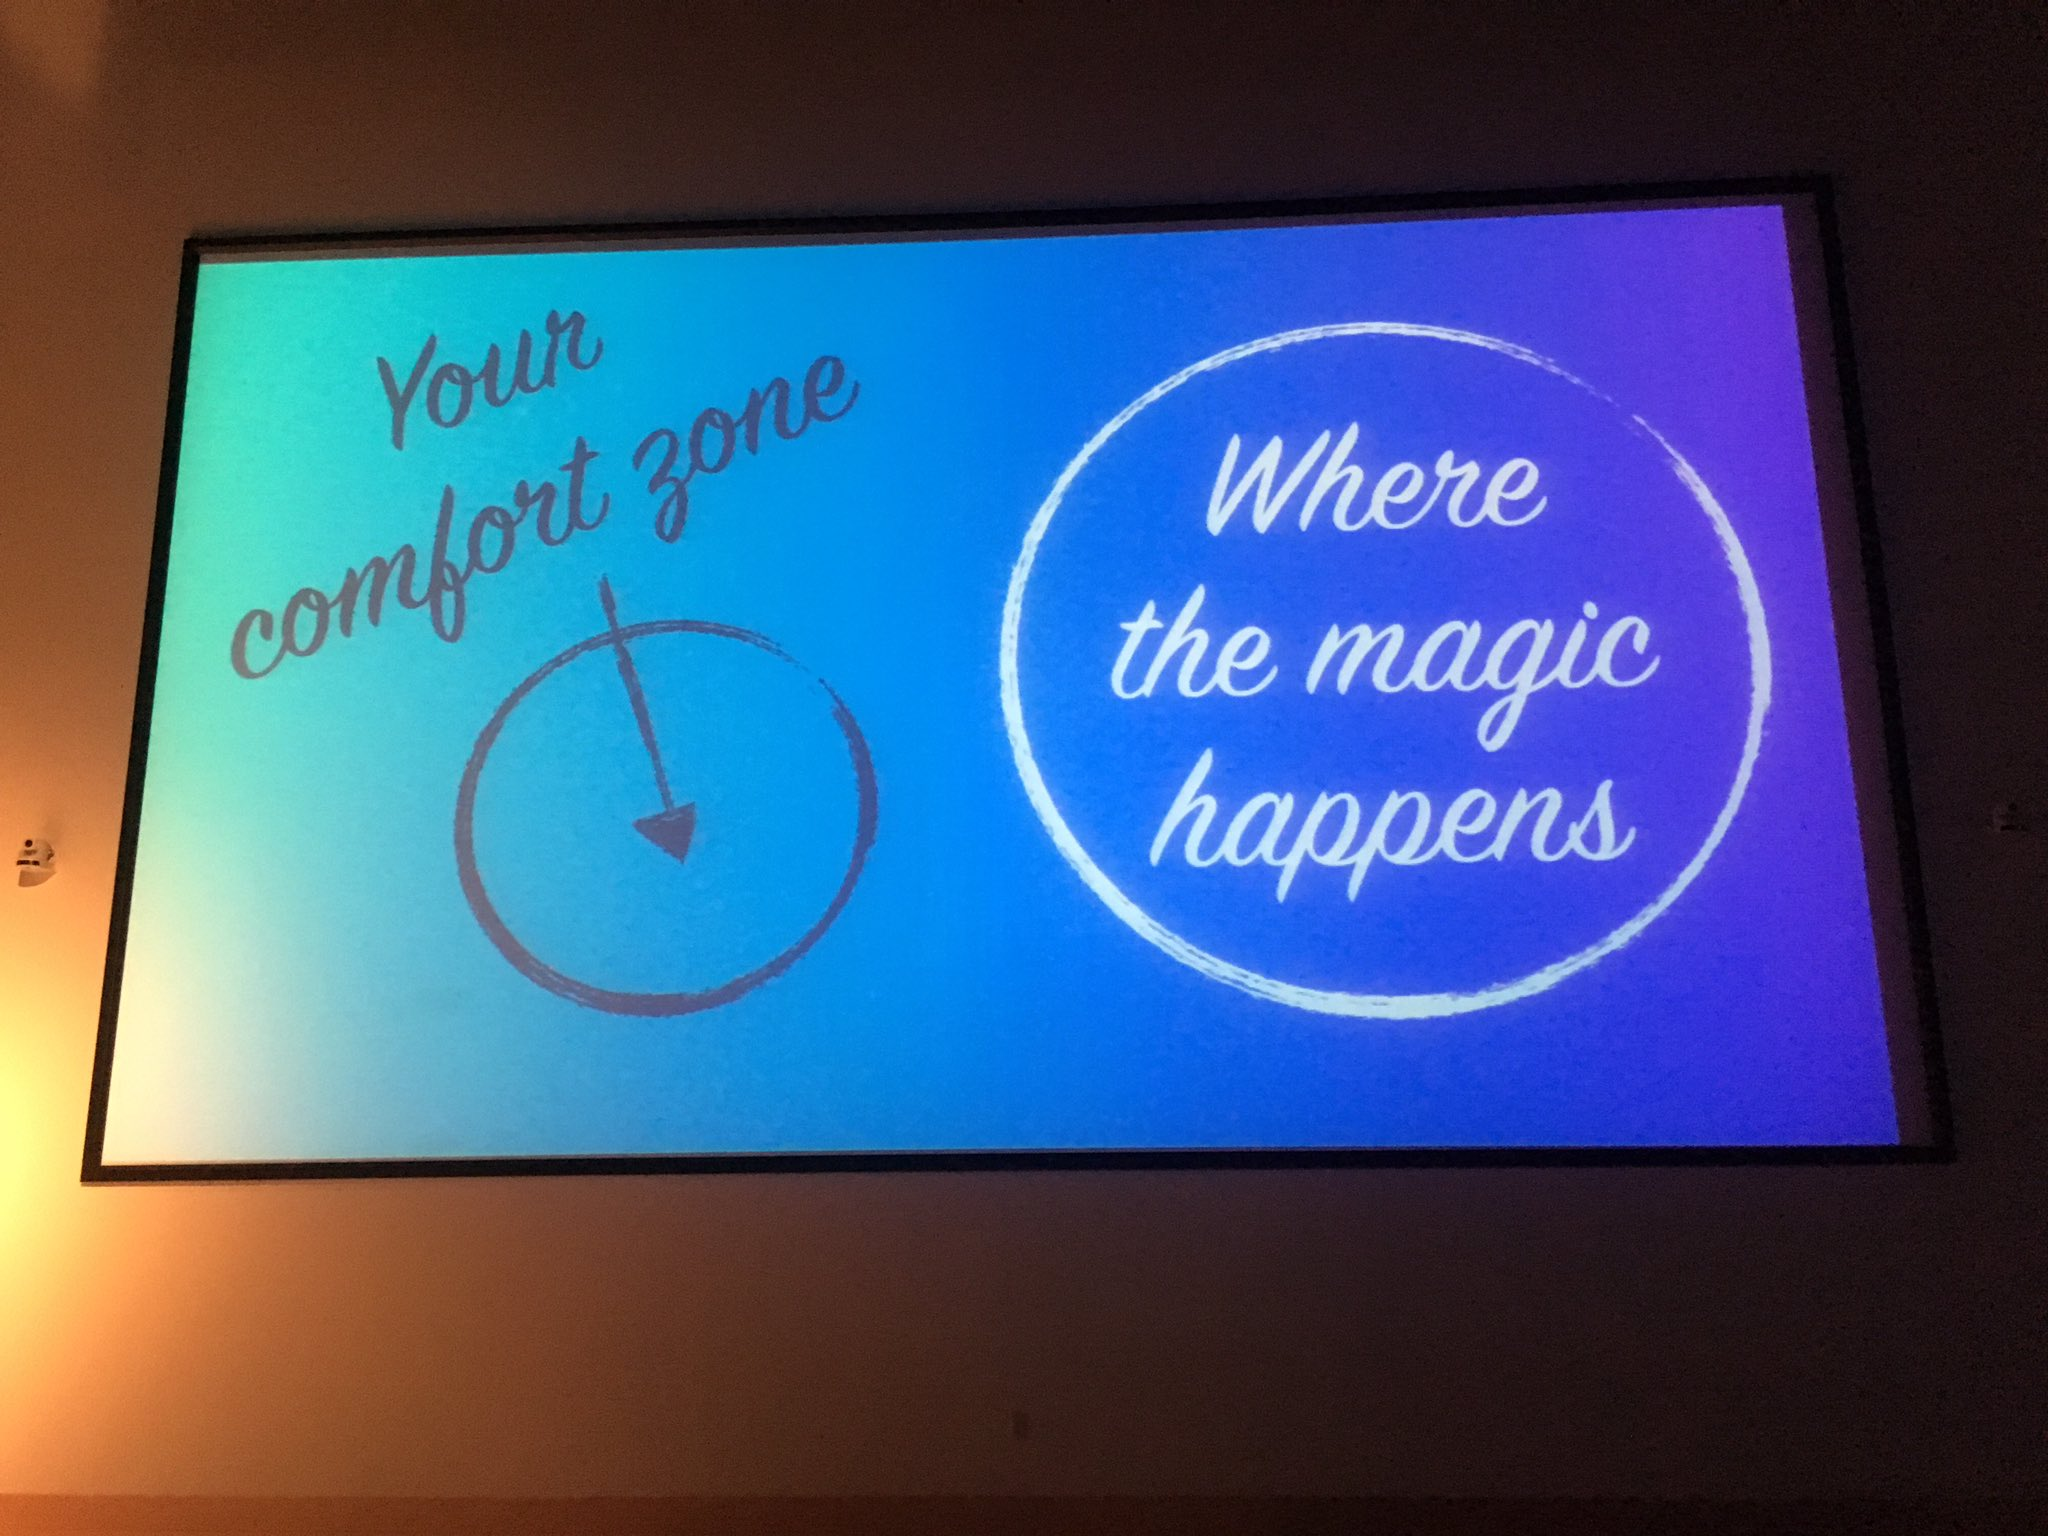 So true, @zenorocha #nejsconf #wherethemagichappens https://t.co/BV673rZsW1